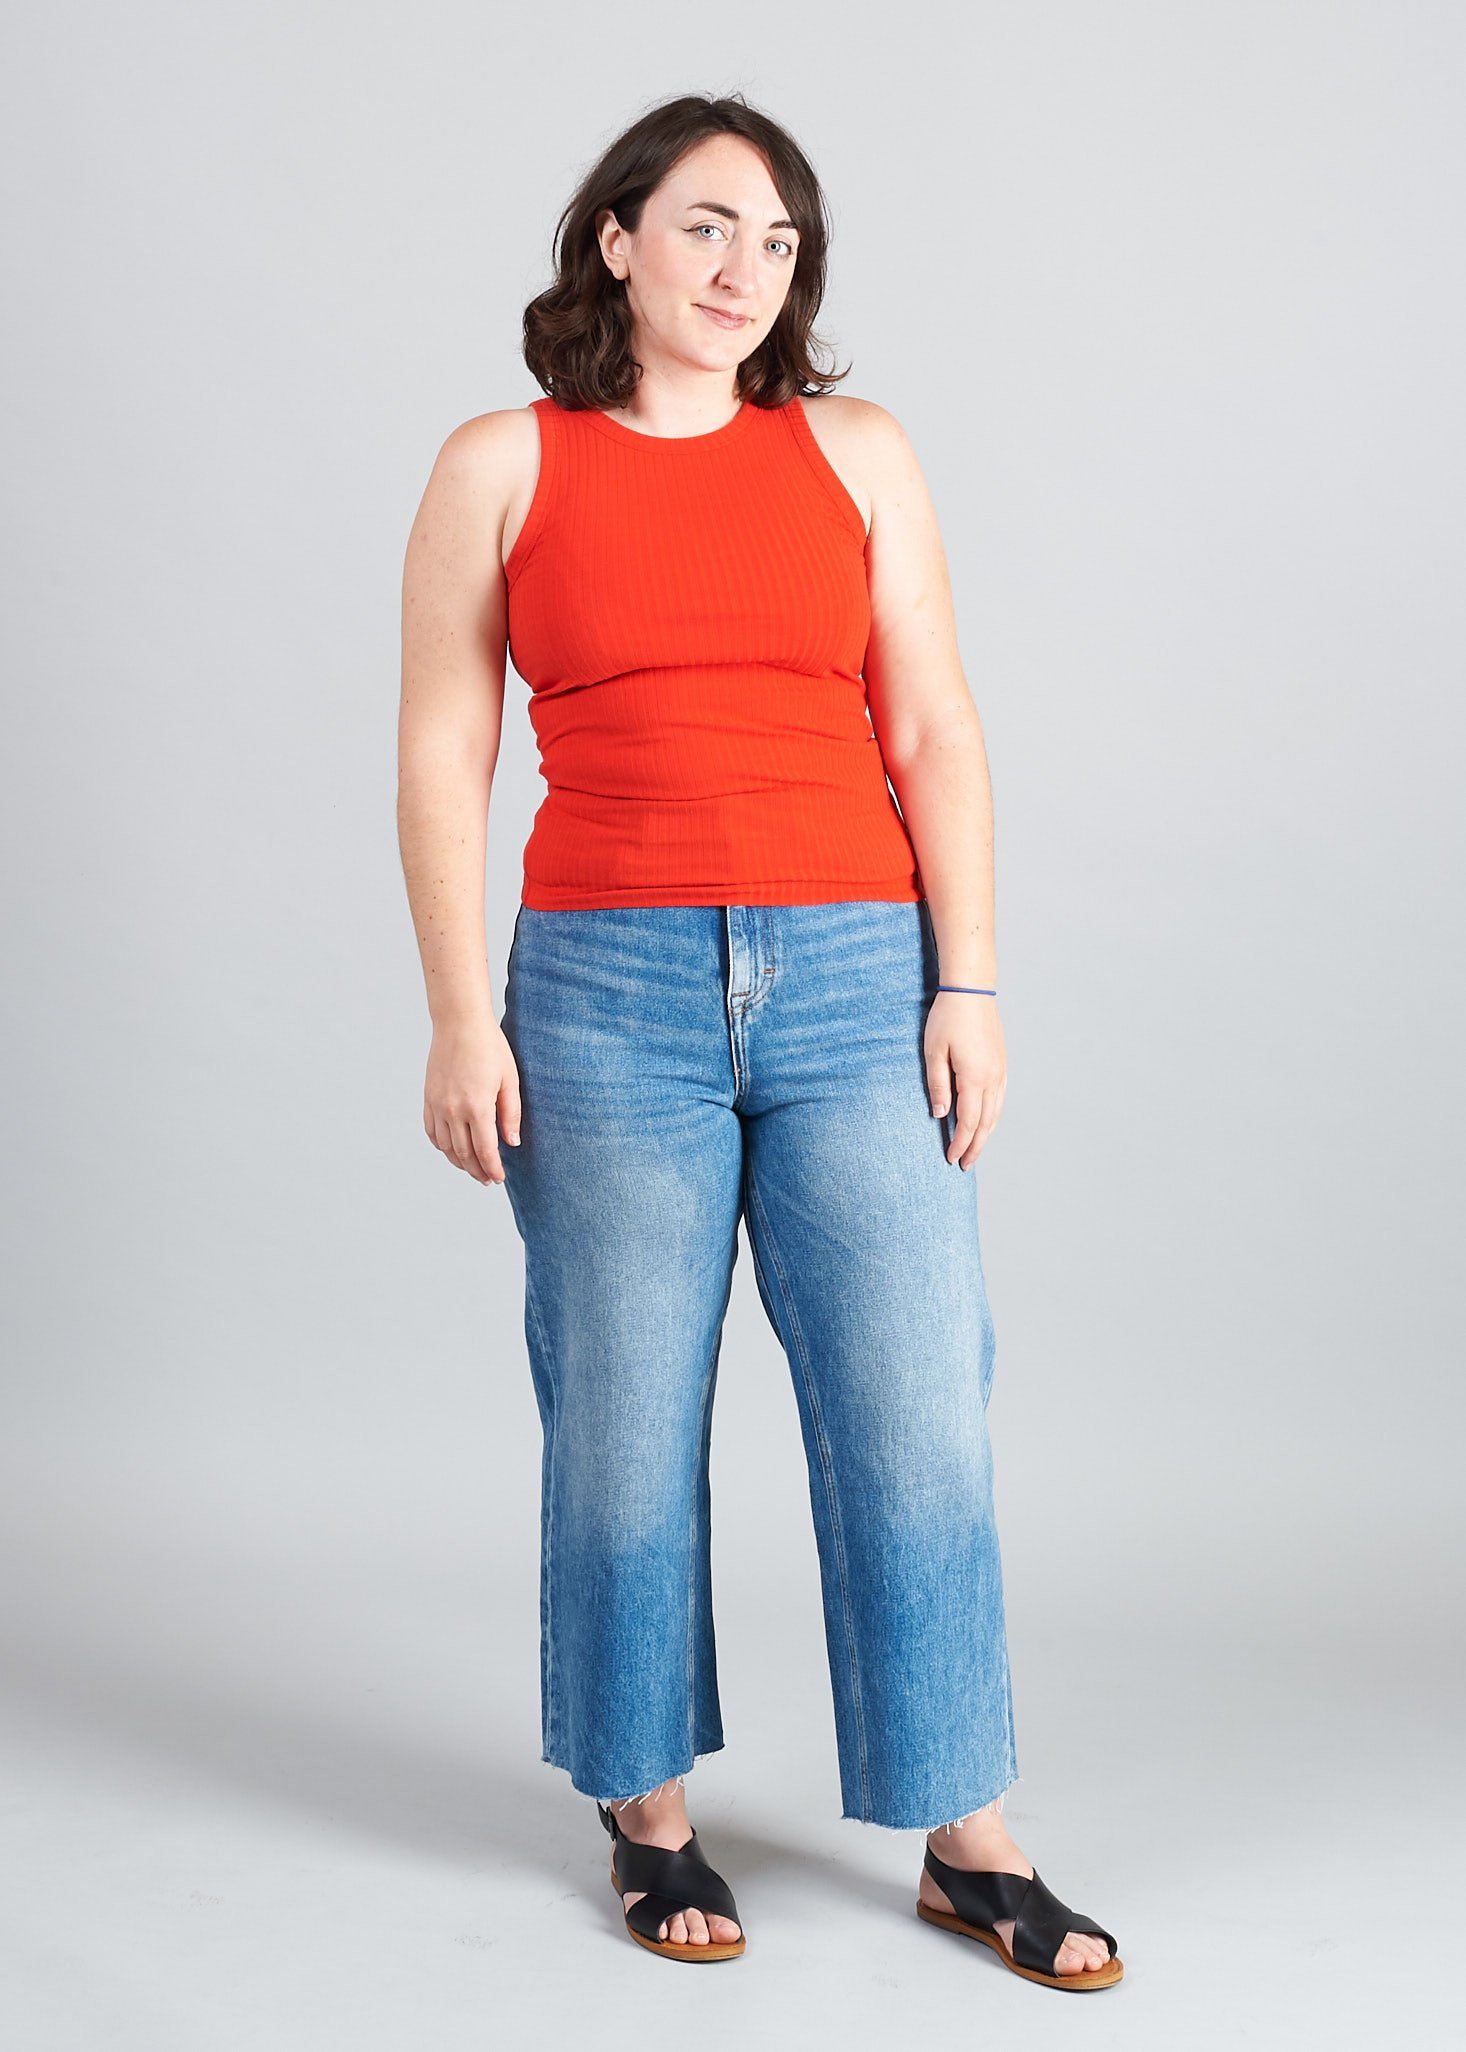 me wearing my red frank and oak tank and wide leg jeans